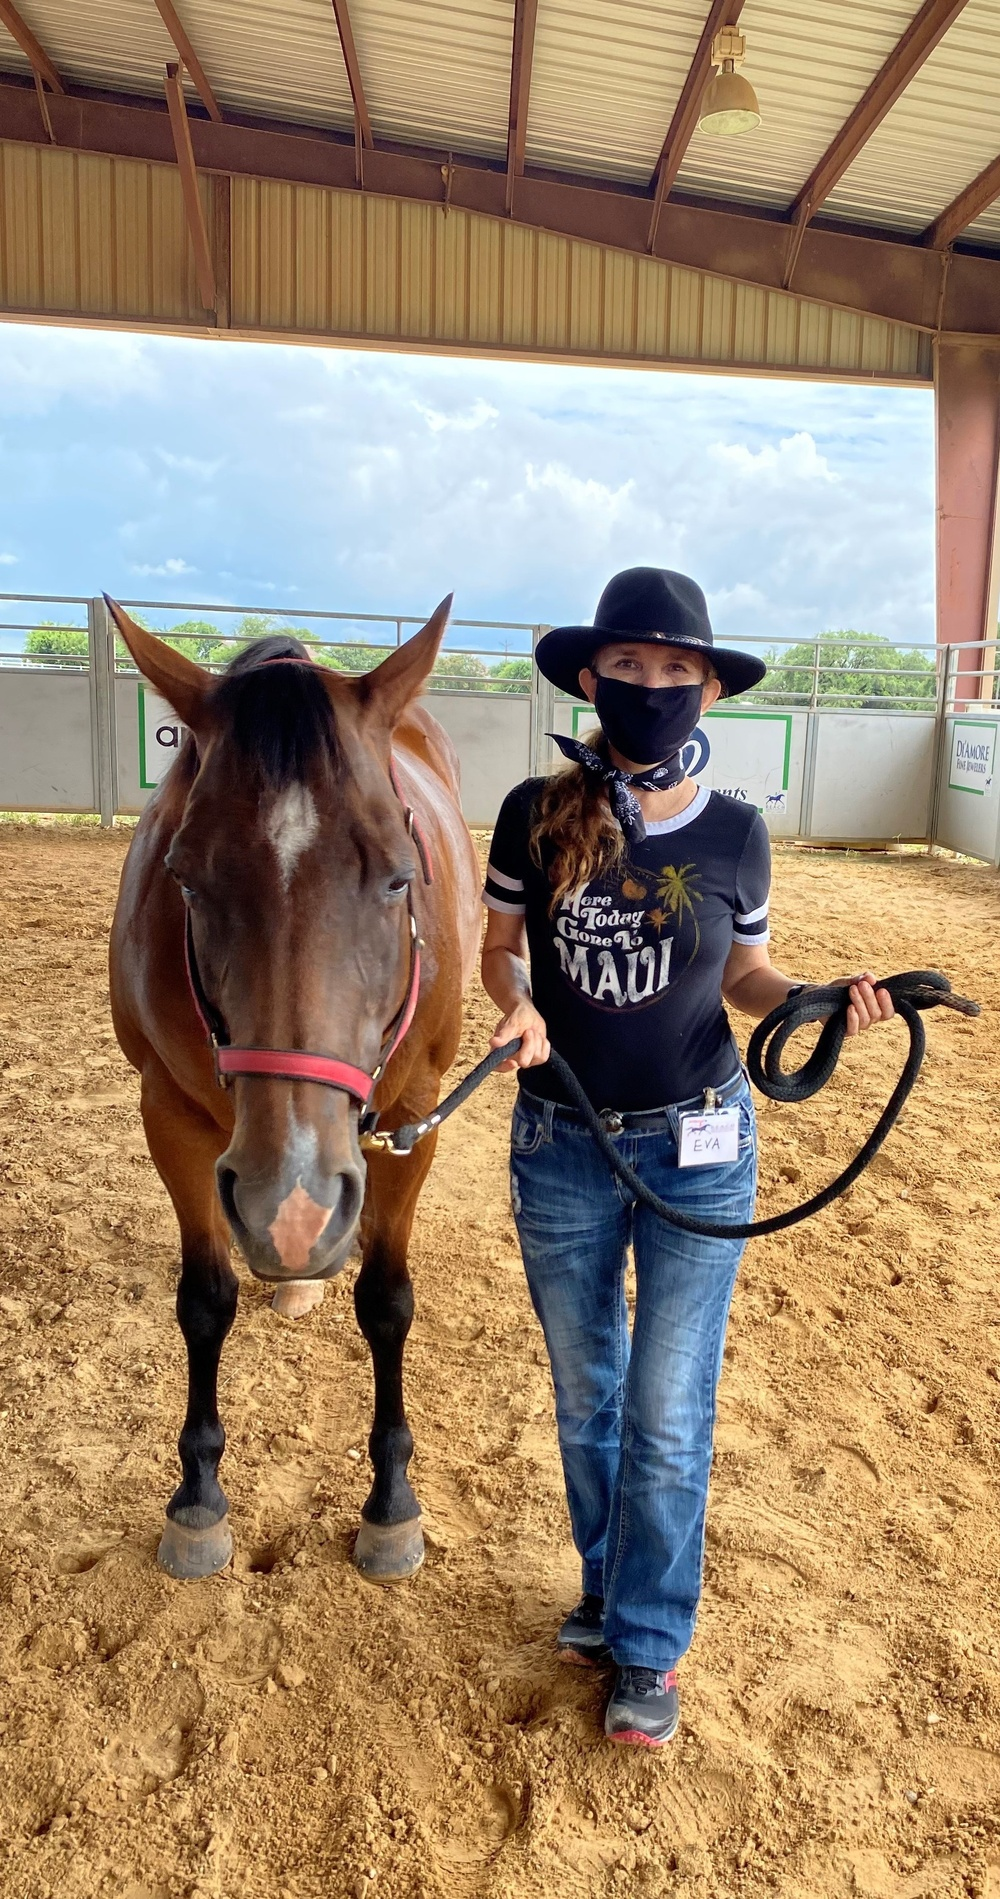 Saddle Up! Therapeutic Program Uses Horses to Help Soldiers